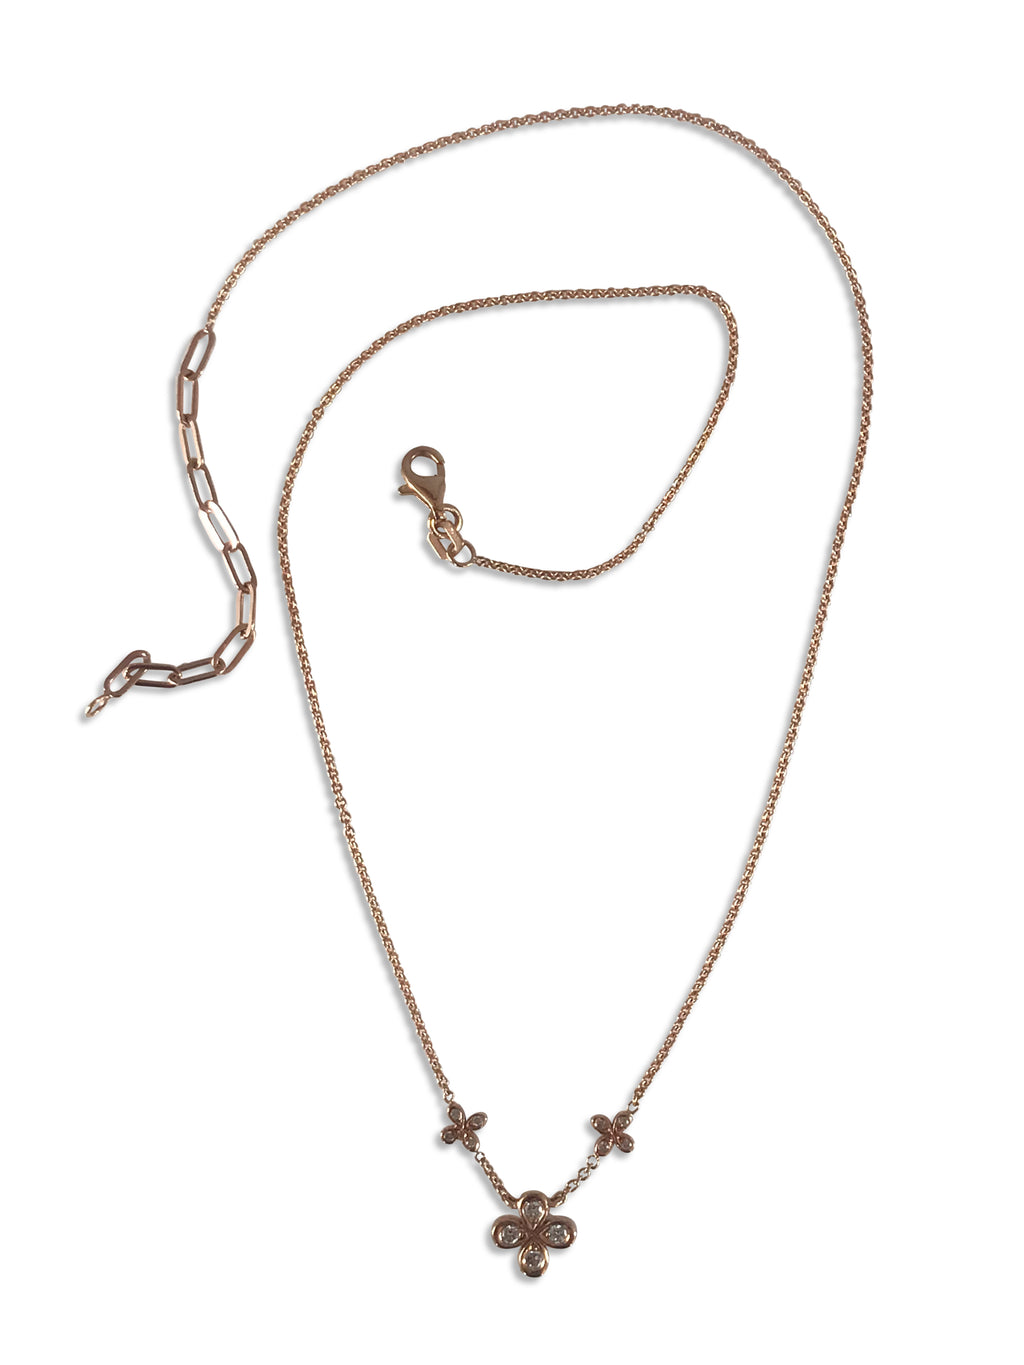 Dainty Diamond Necklace in 18k Rose Gold